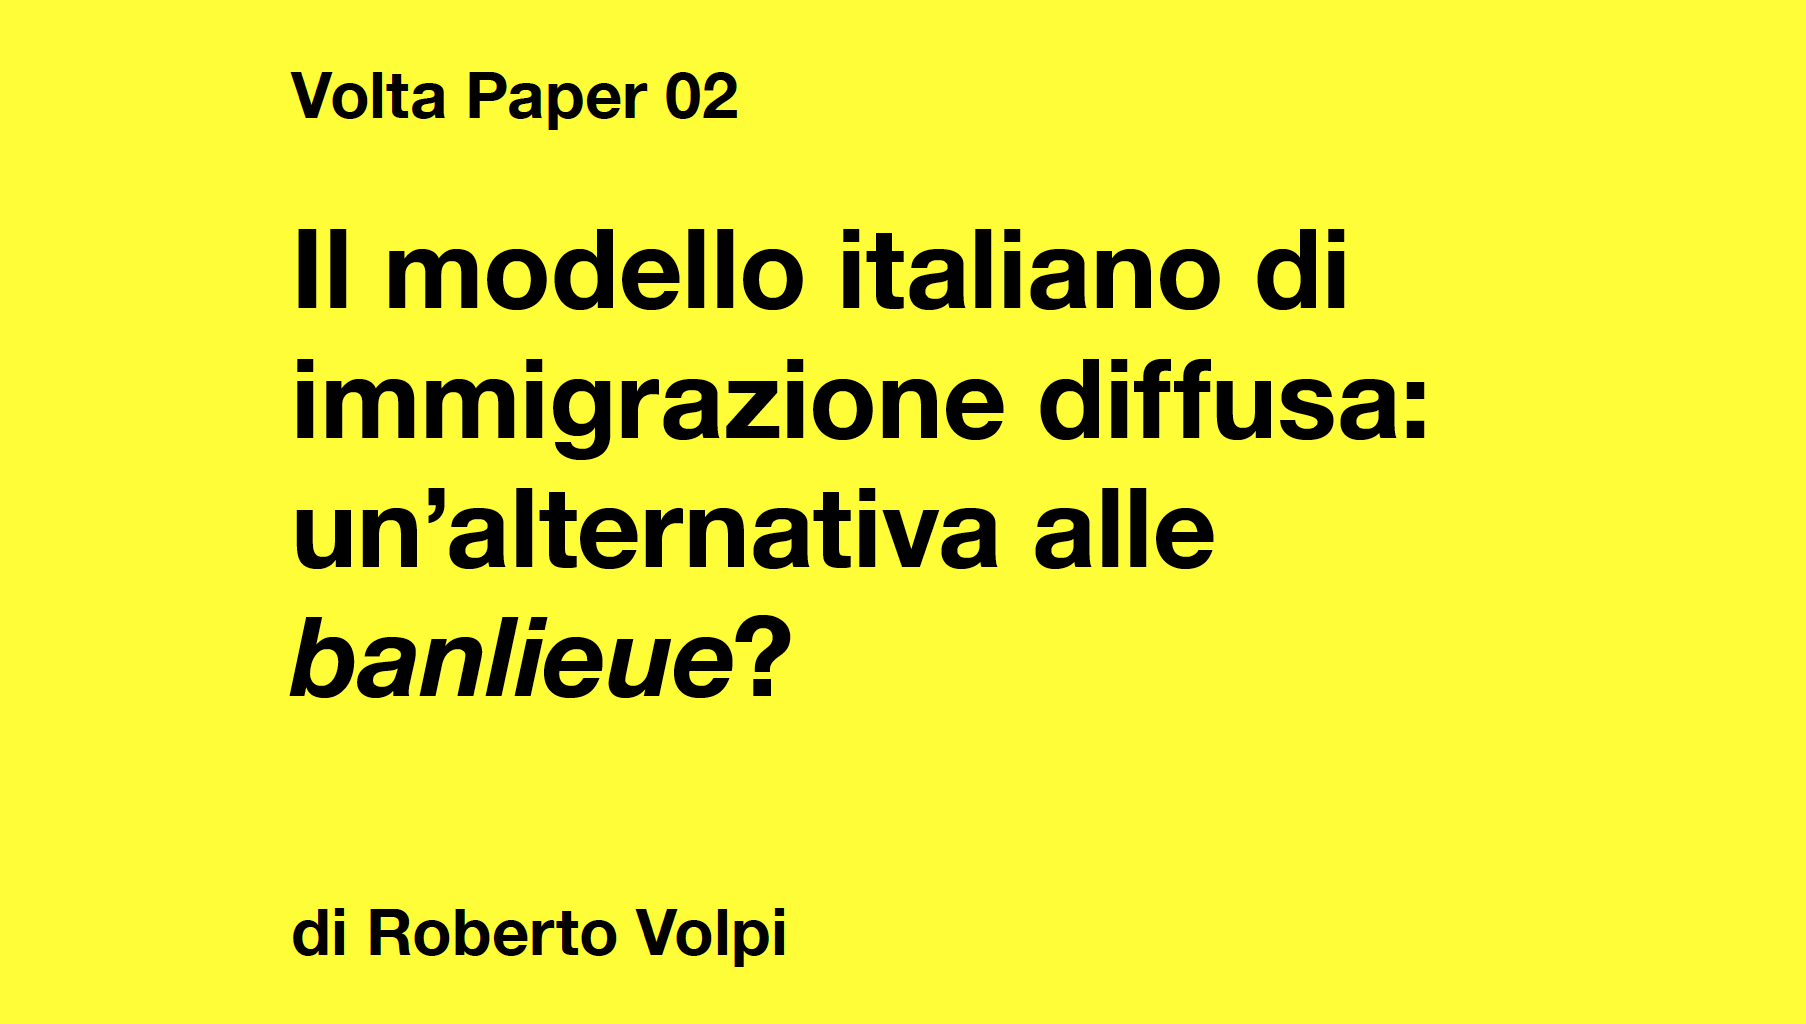 The italian model of immigration